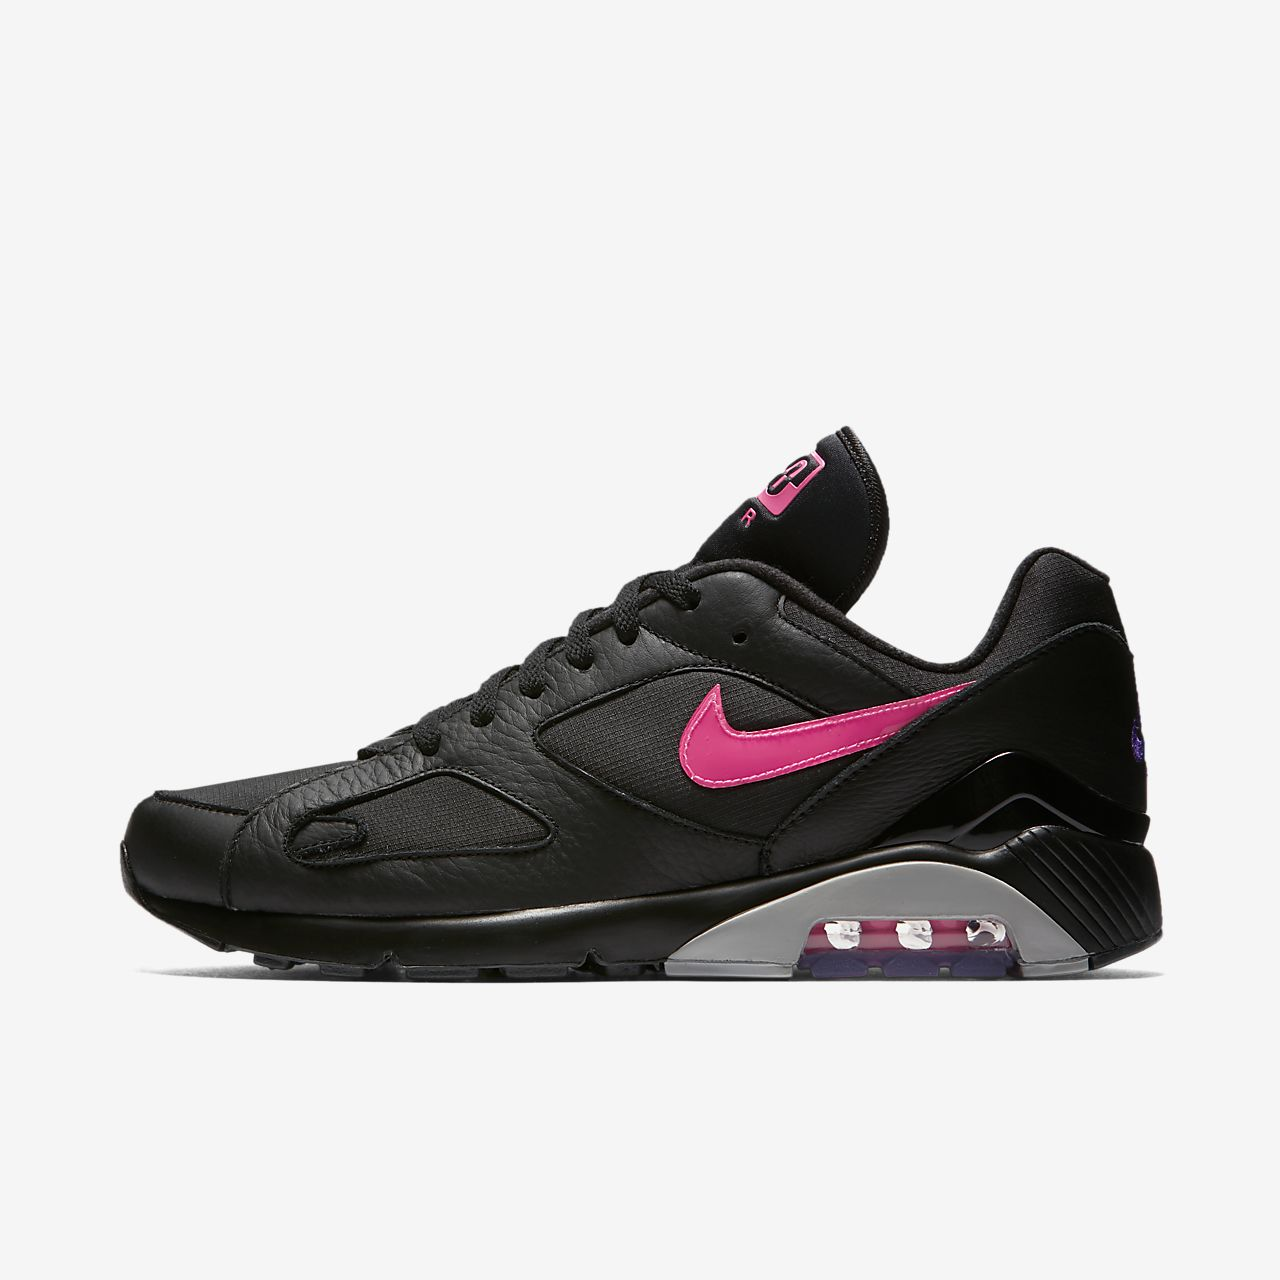 reputable site 99af4 5b23b ... Nike Air Max 180 Mens Shoe